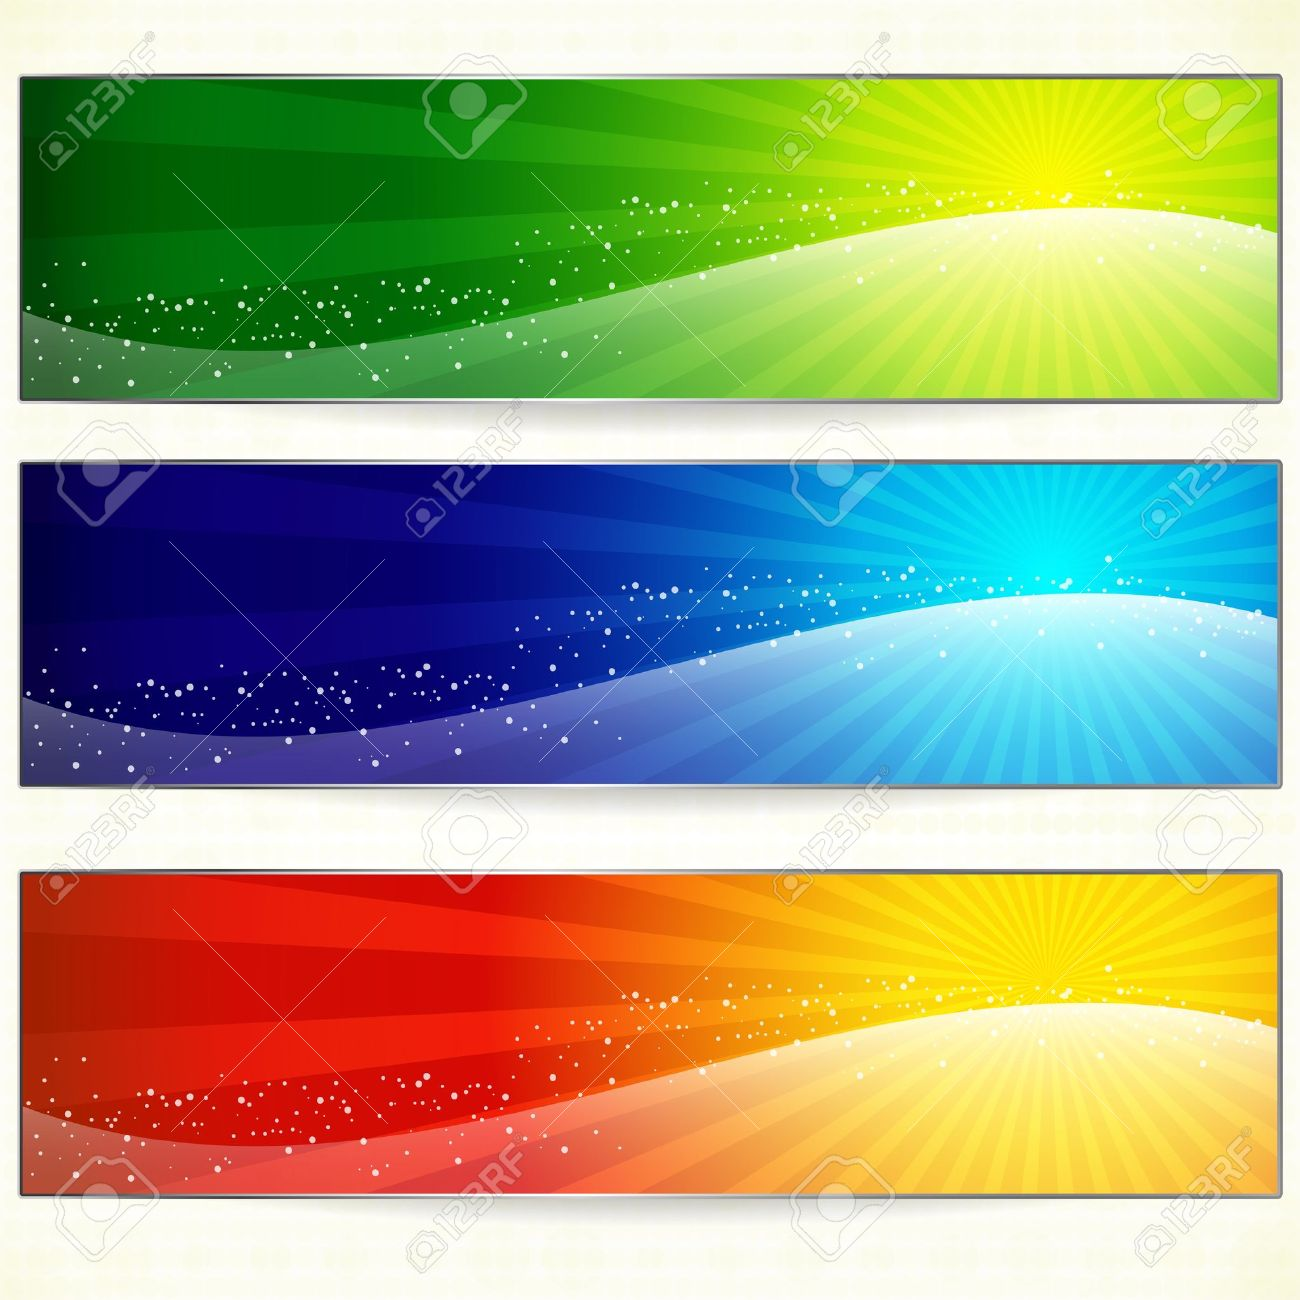 Abstract trendy colorful banners for your design header. Stock Vector - 13121116